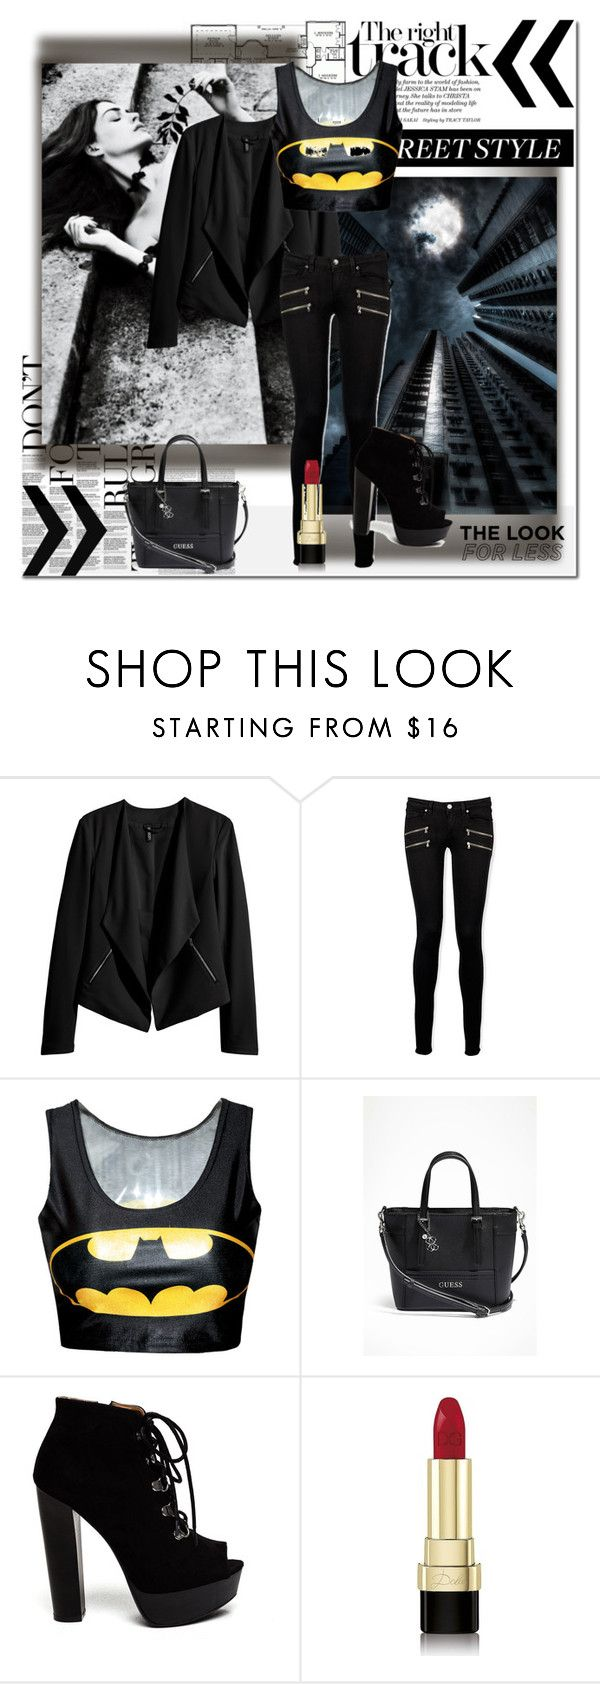 """""""Batman style"""" by tess-302 ❤ liked on Polyvore featuring H&M, Paige Denim, GUESS, Dolce&Gabbana, black, Dark, batman, AnneHathaway and TheDarkKnight"""